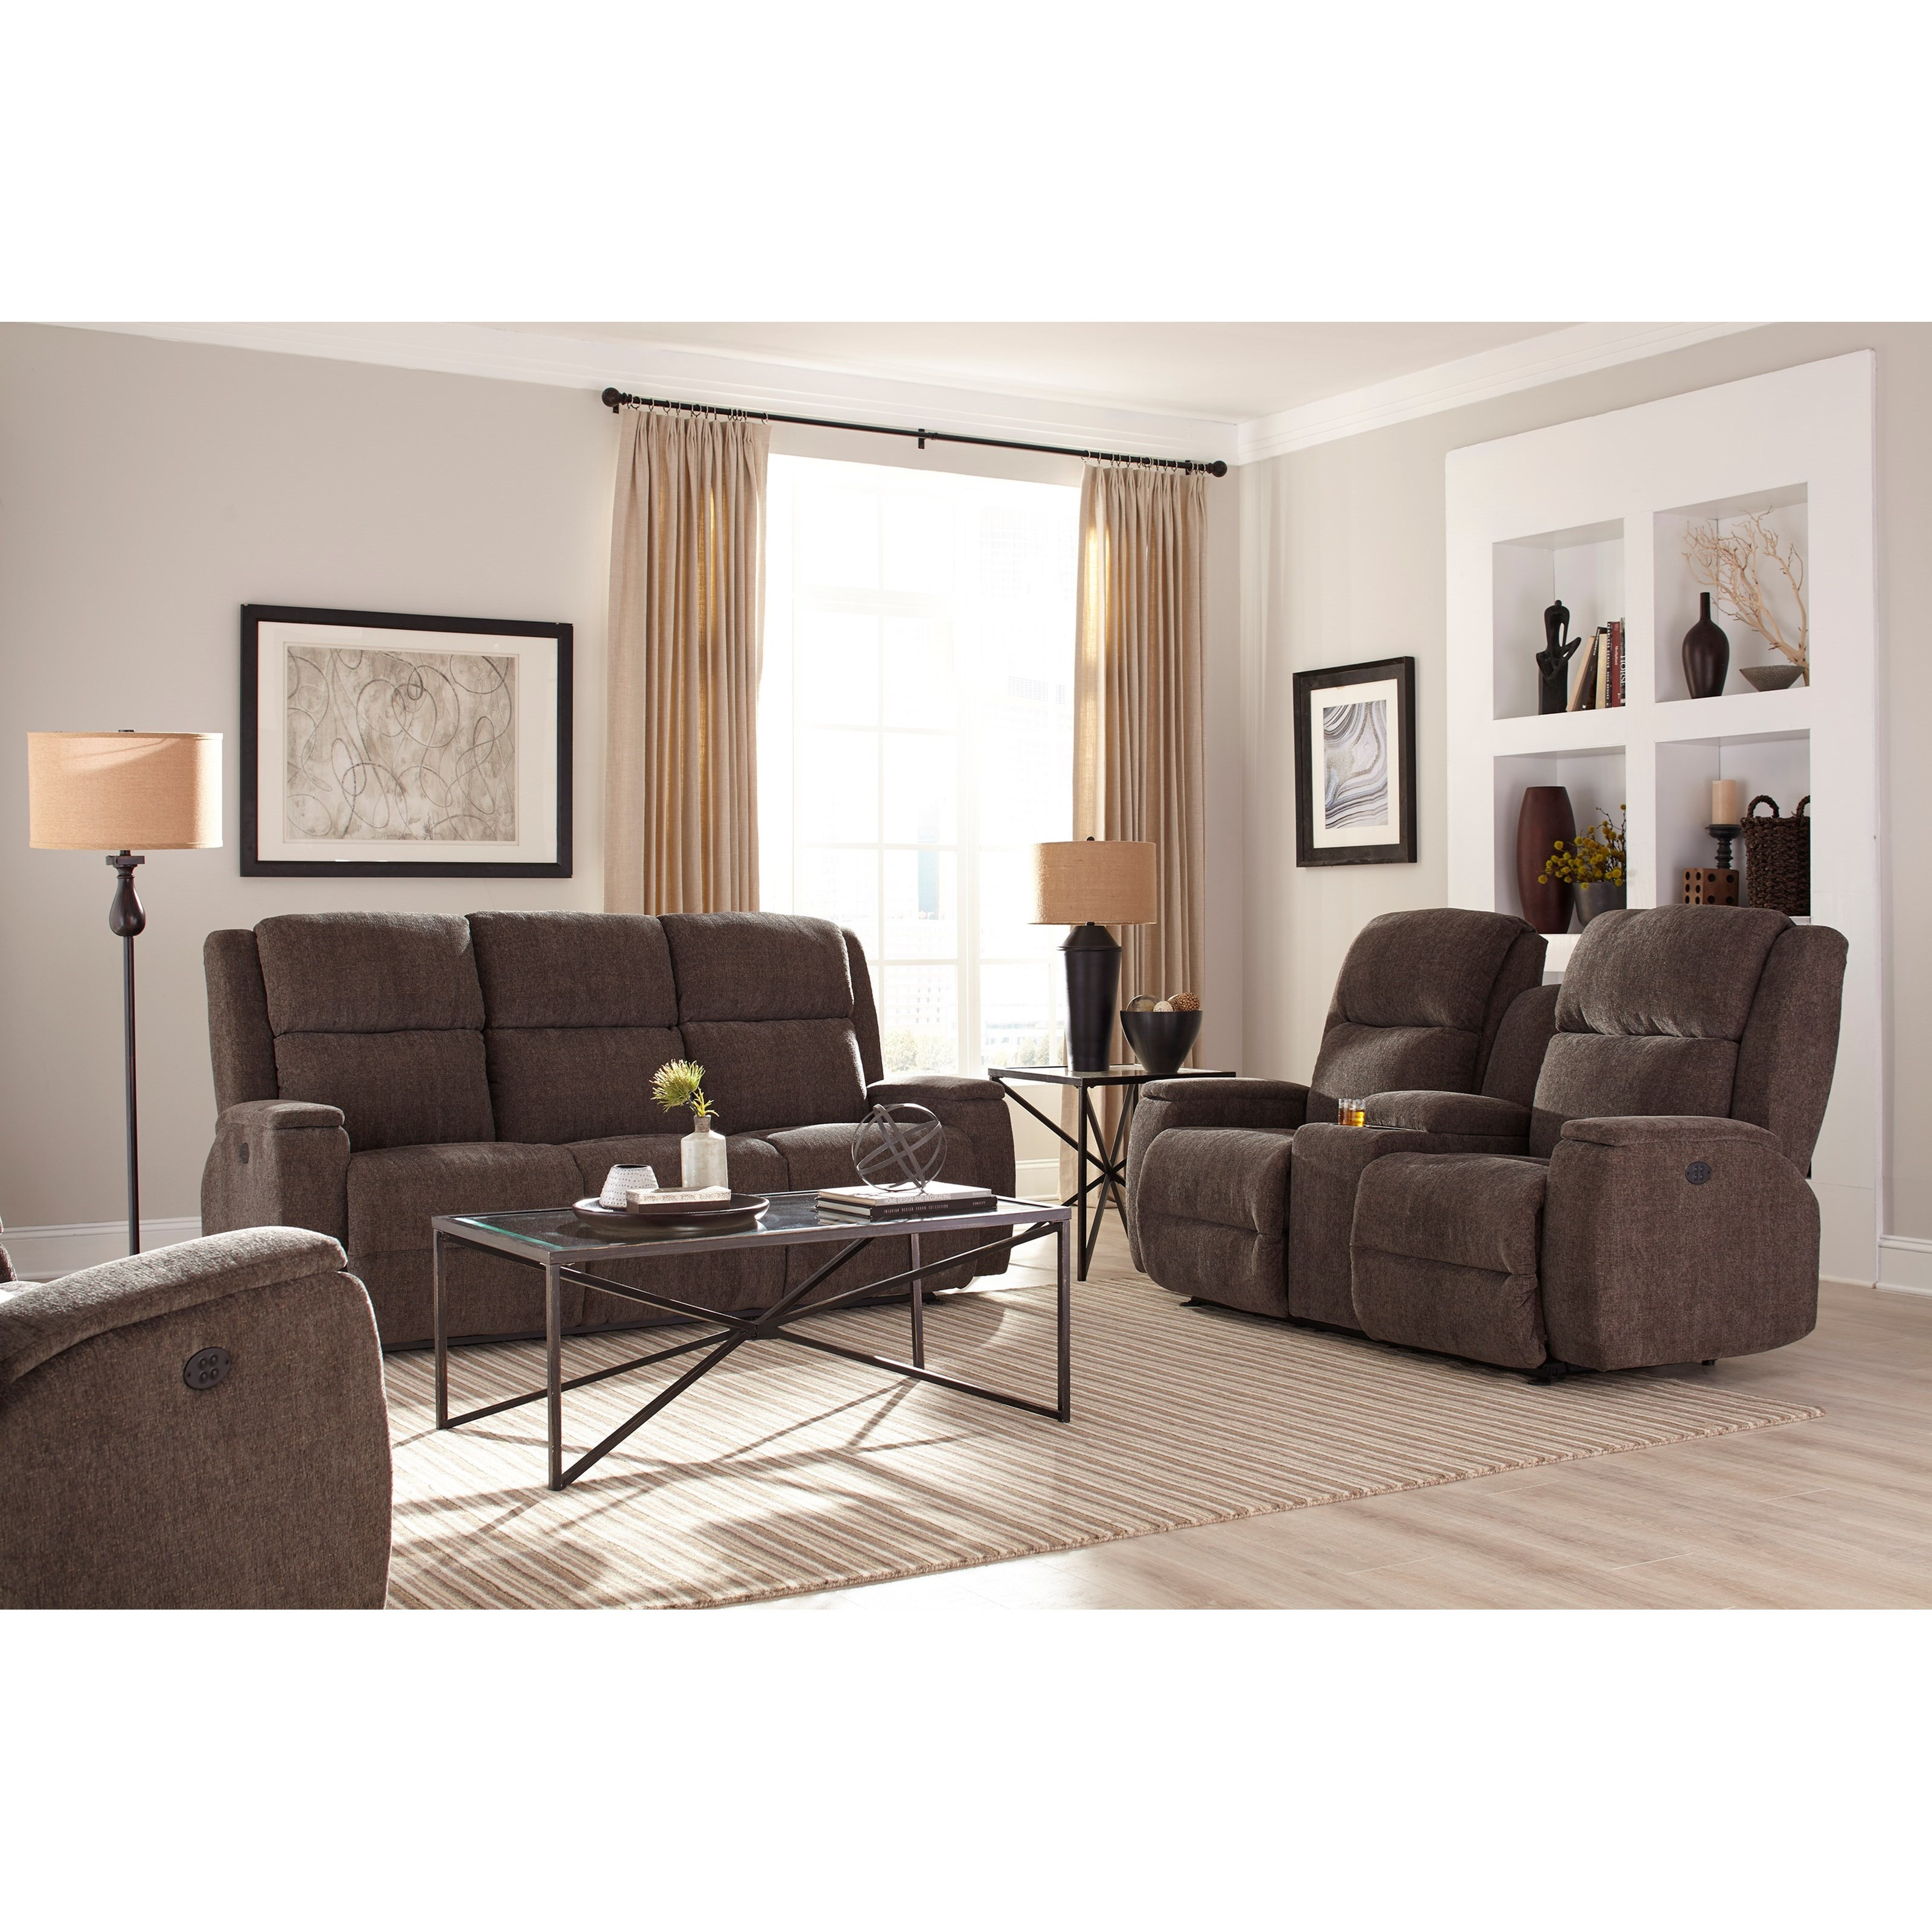 Best Home Furnishings Colton Reclining Living Room Group Great American Home Store Reclining